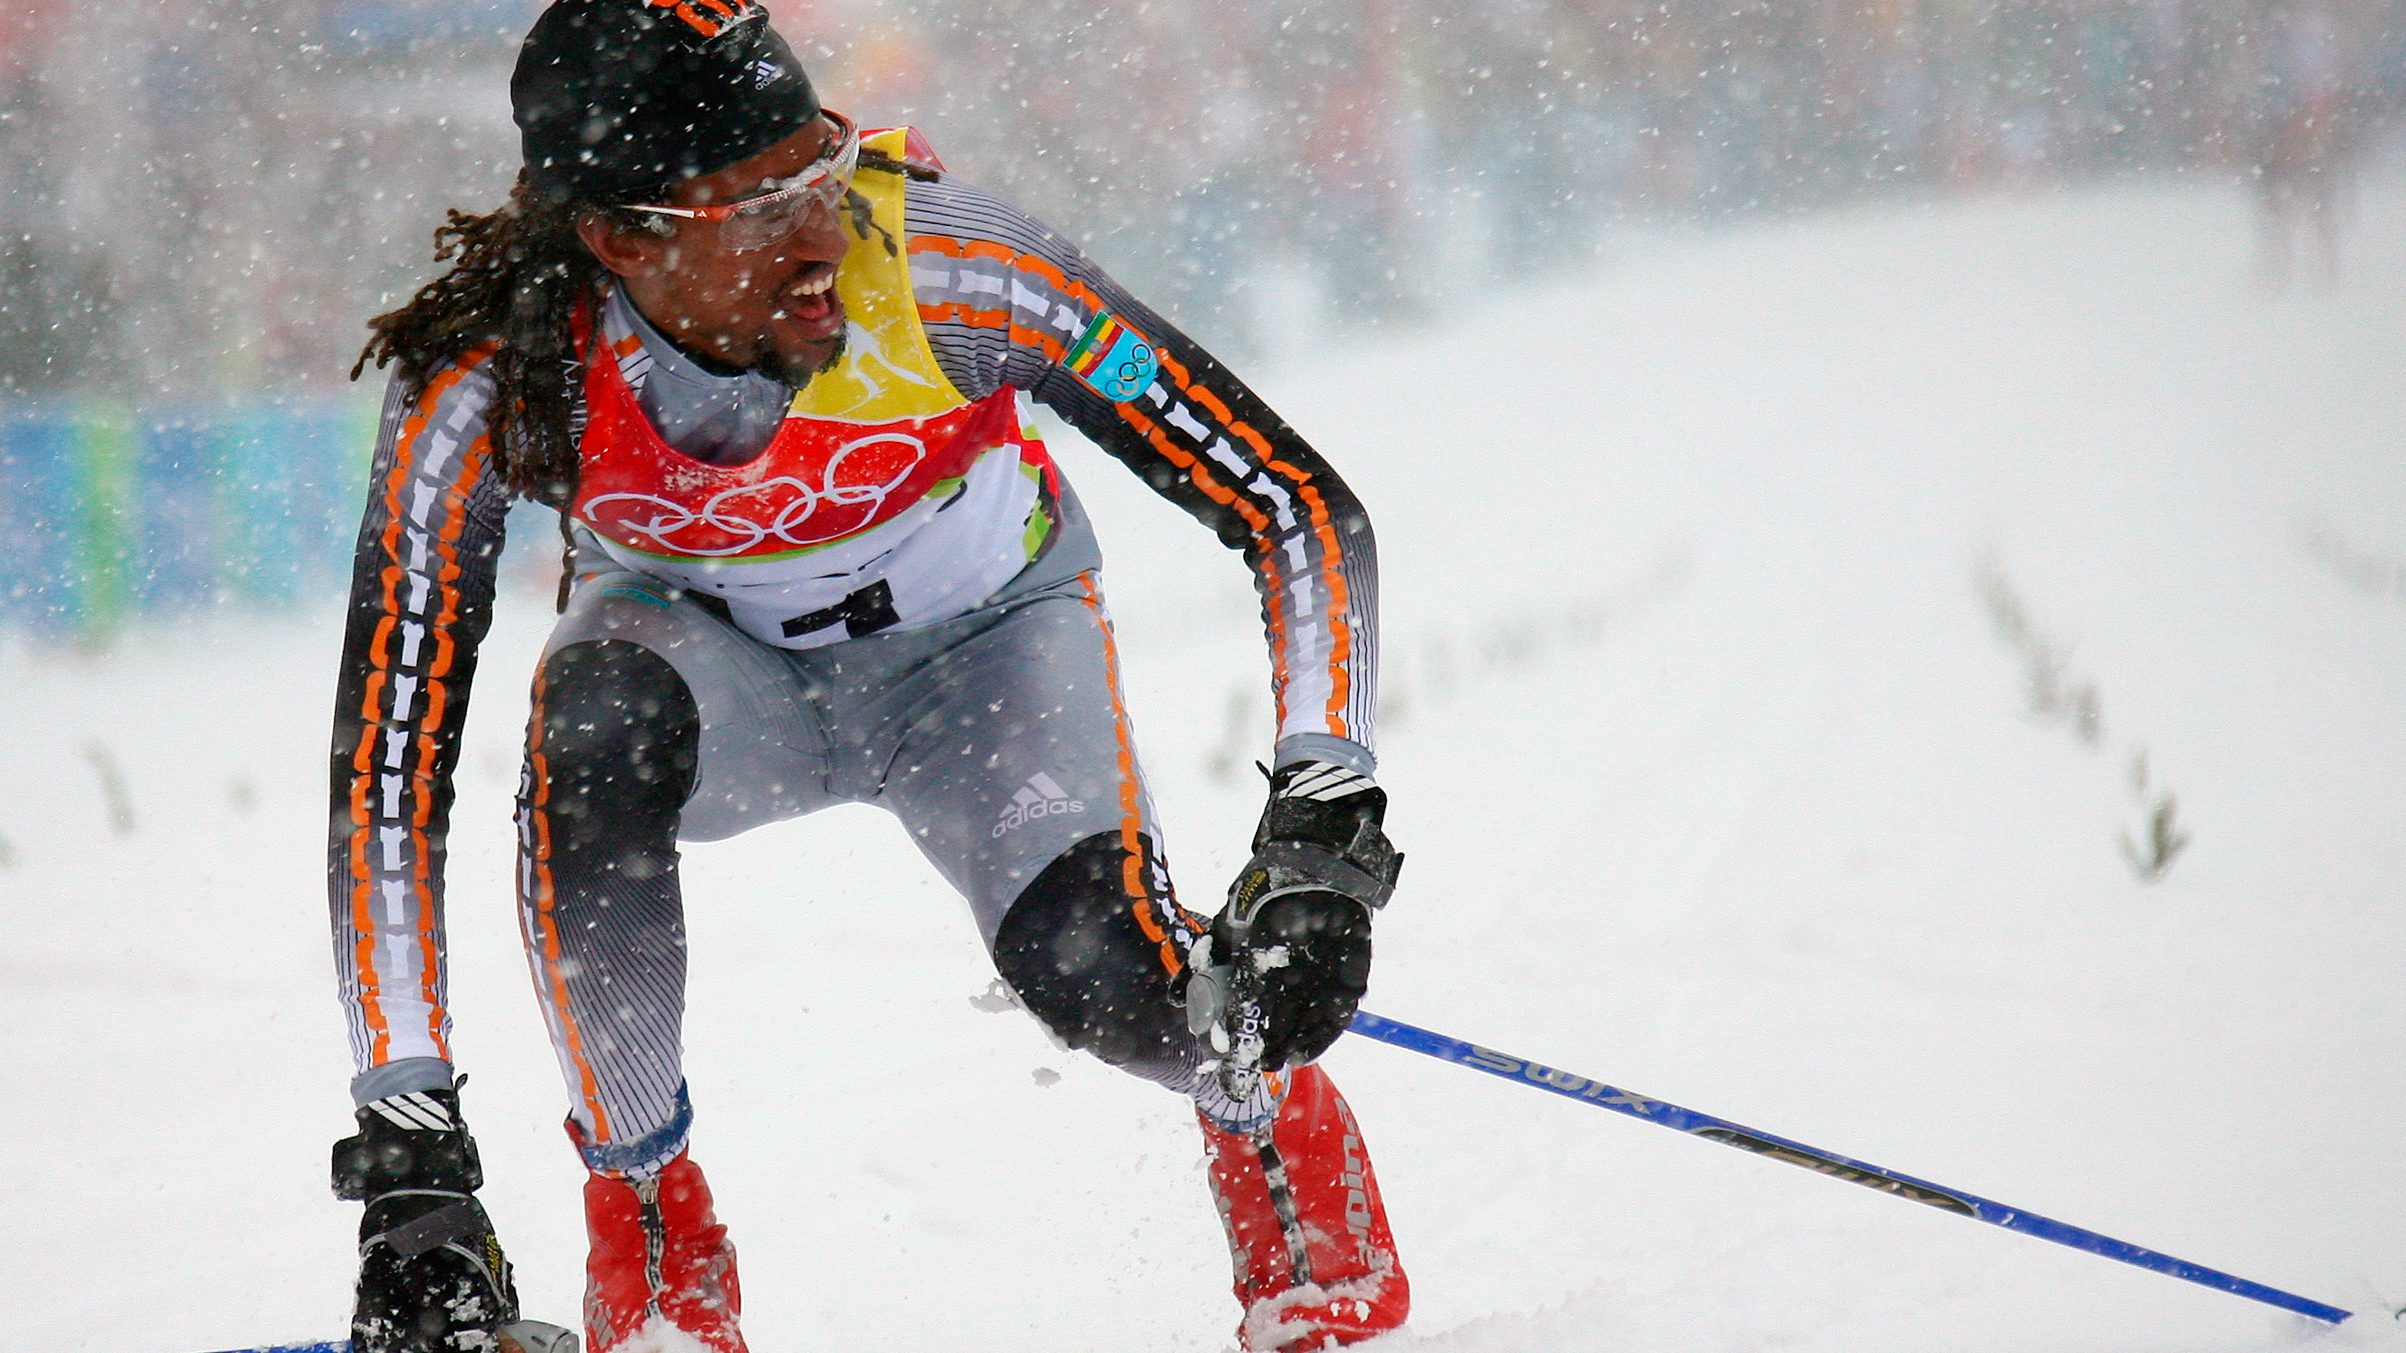 Ethiopia's Teklemariam finishes the men's 15km classical cross country race at the Winter Olympic Games